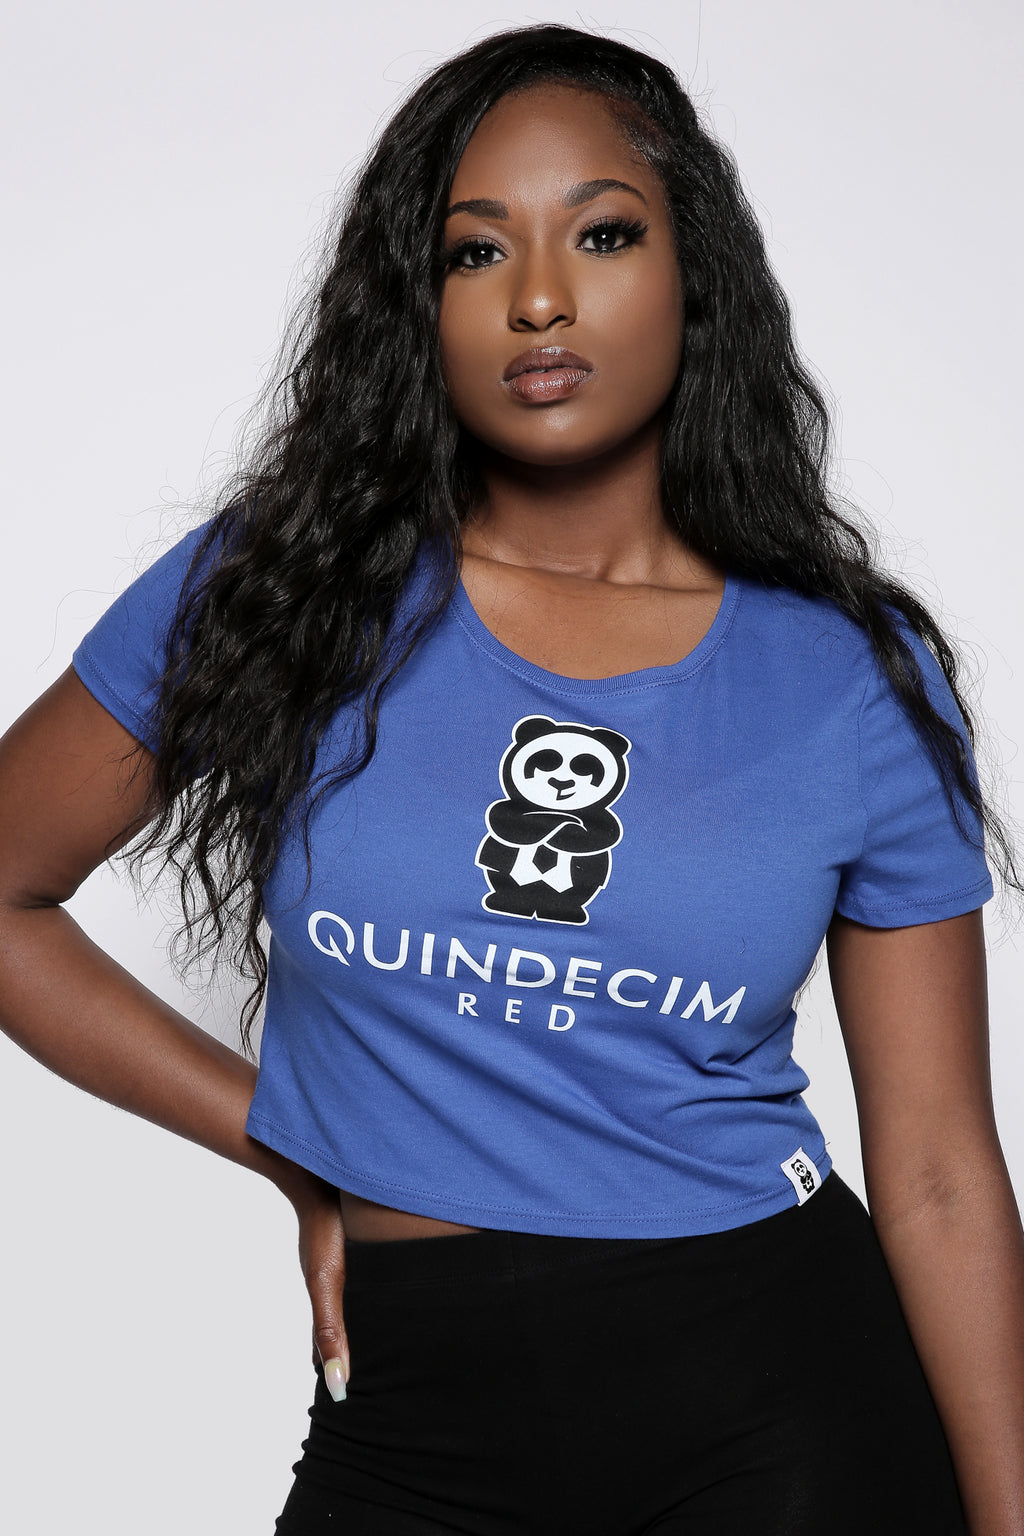 Women's Fitted Crop Tee (Royal) - Quindecim Red